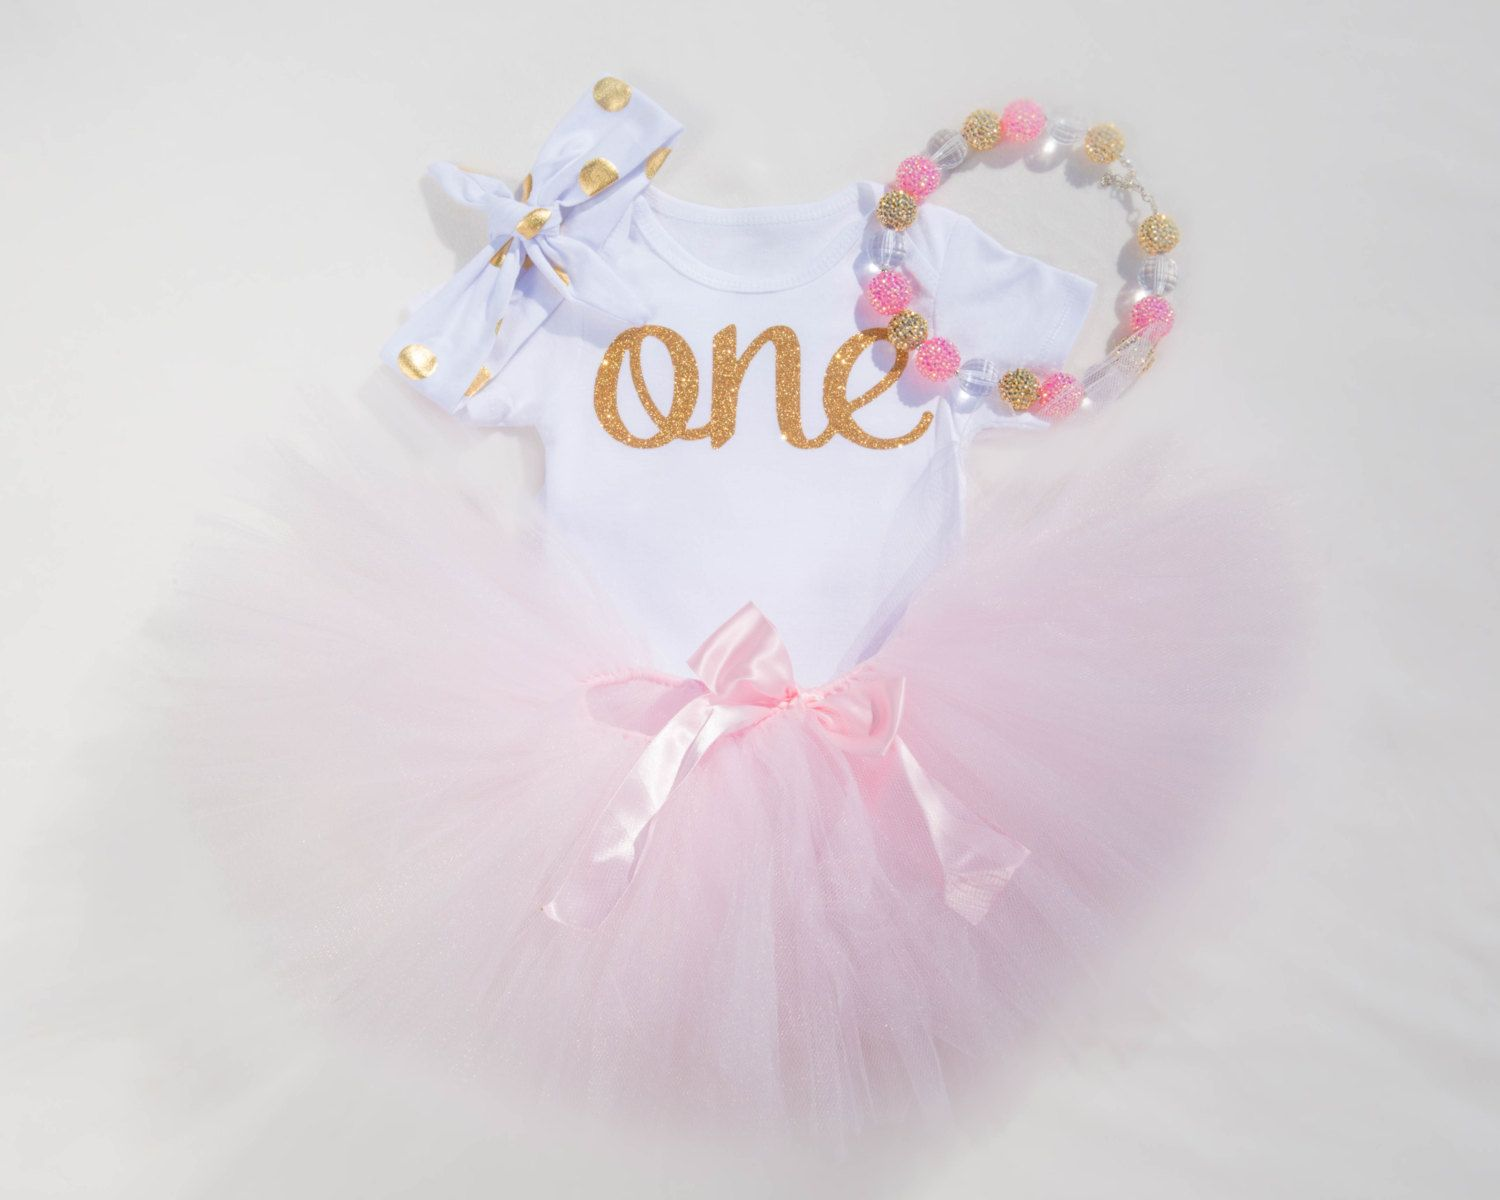 This beautiful outfit is the perfect attire for your little girl's first birthday ! The soft pink tutu and Gold accents really bring out the sweetness of being a girl! This first birthday outfit is even prettier in person!  This outfit is part of our ONE™ collection!!